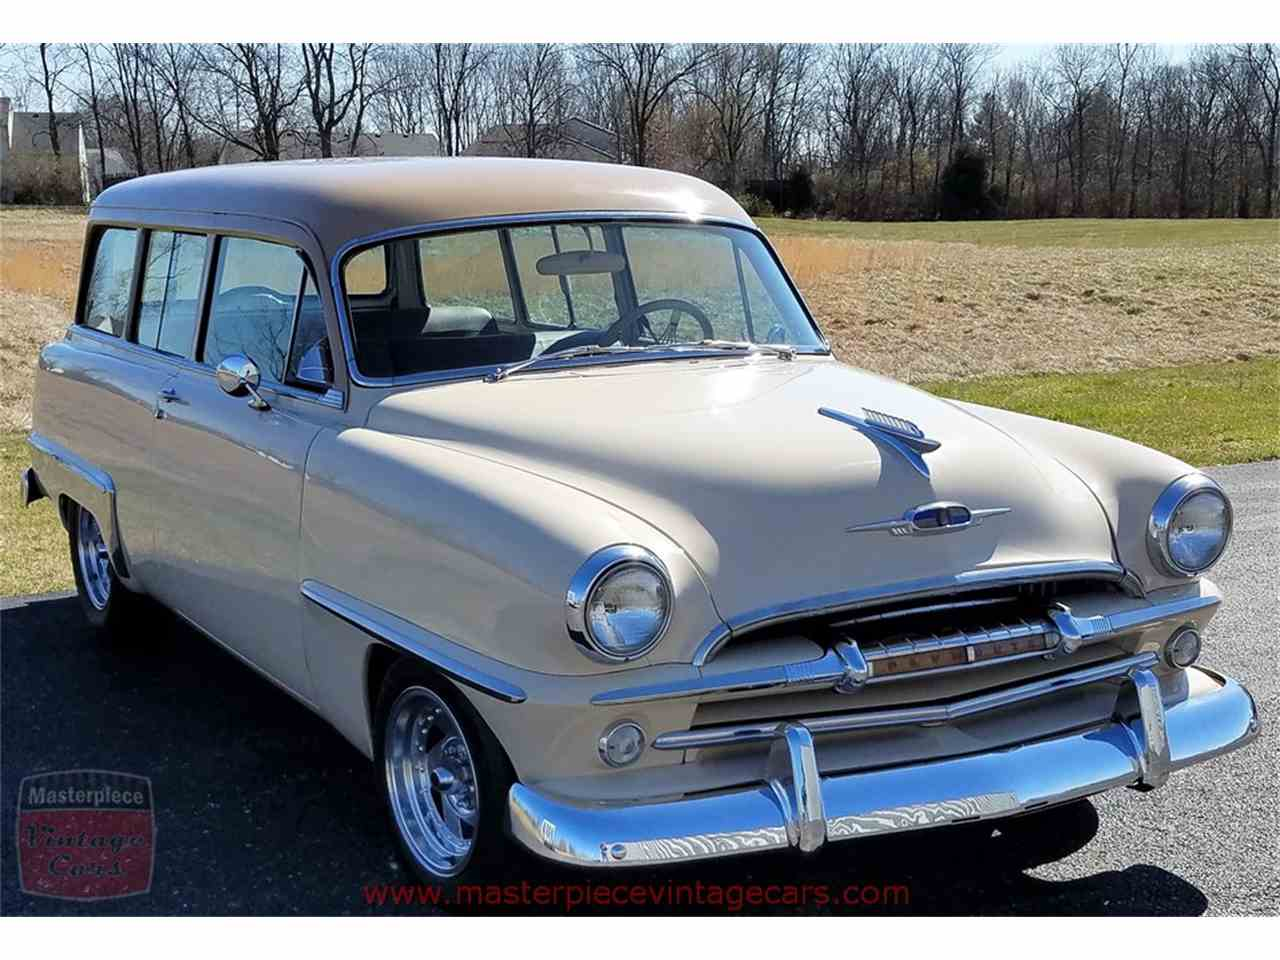 Large Picture of Classic 1954 Plaza Suburban Offered by Masterpiece Vintage Cars - KV49